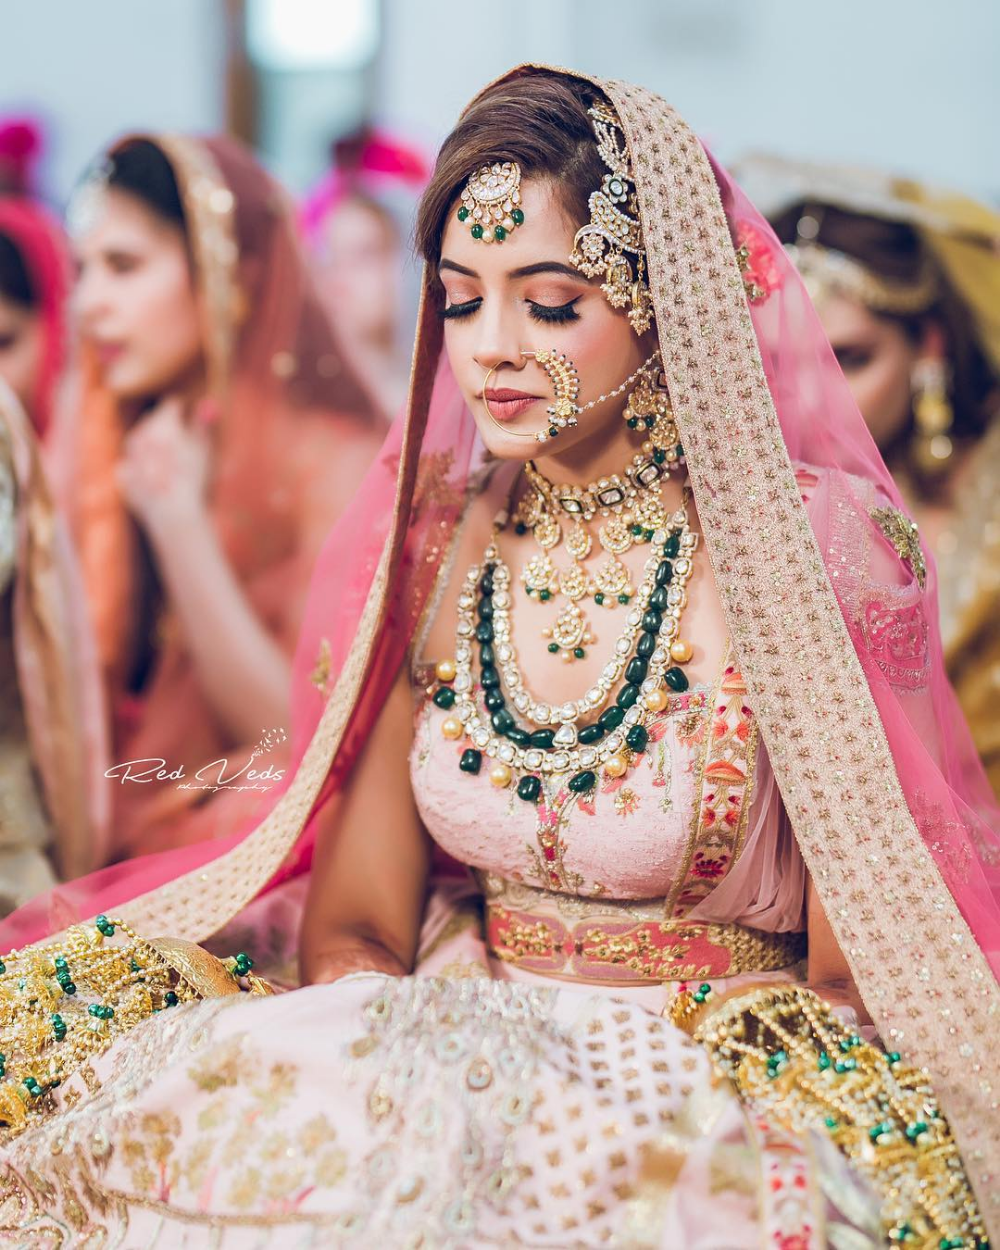 Quirky Wedding Hairstyle: Offbeat Bridal Jewellery Designs Spotted On Real Brides